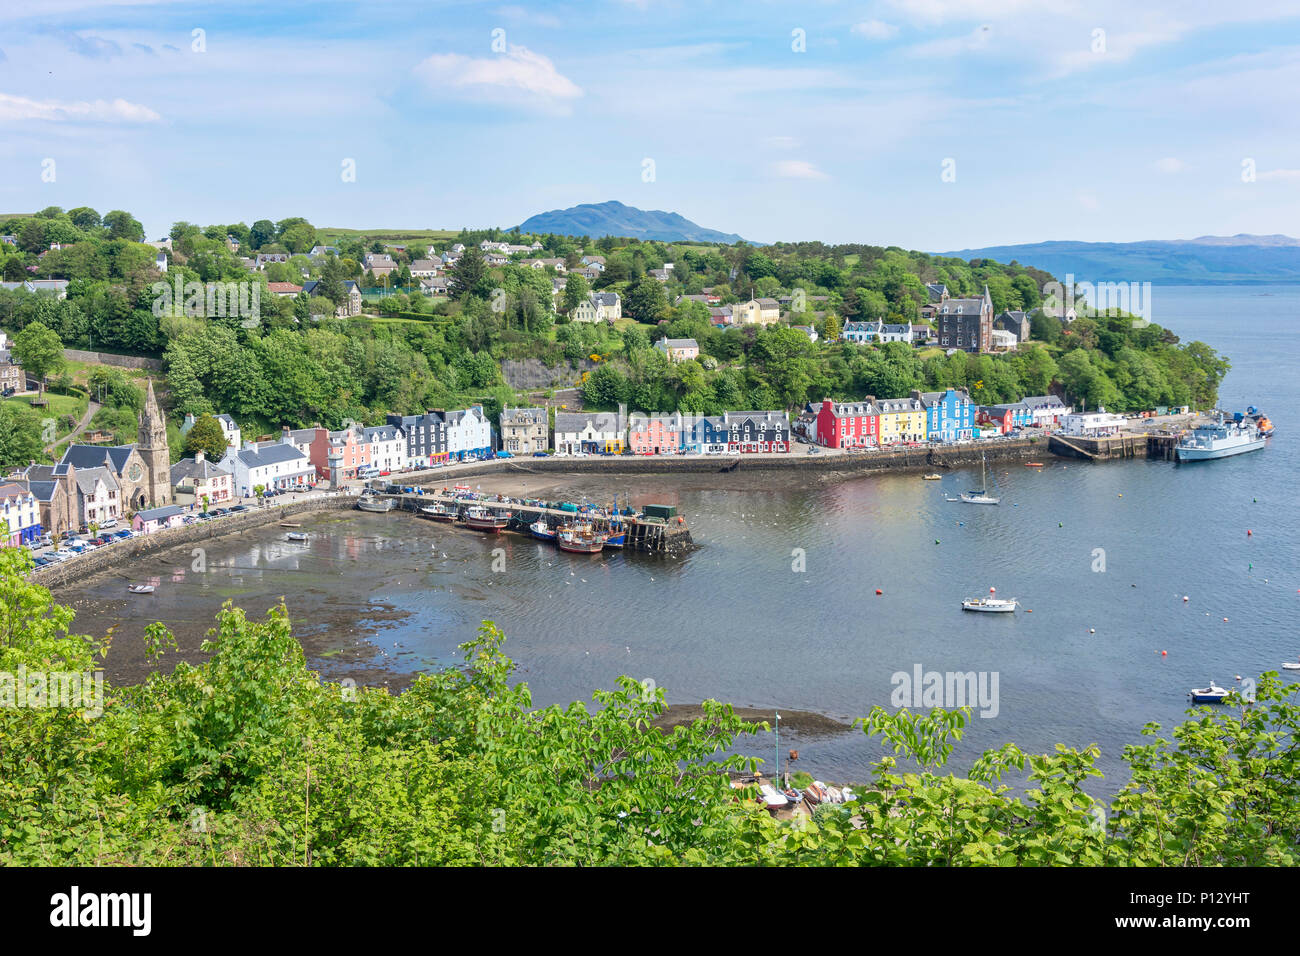 View of harbour and quayside, Tobermory, Isle of Bute, Inner Hebrides, Argyll and Bute, Scotland, United Kingdom - Stock Image